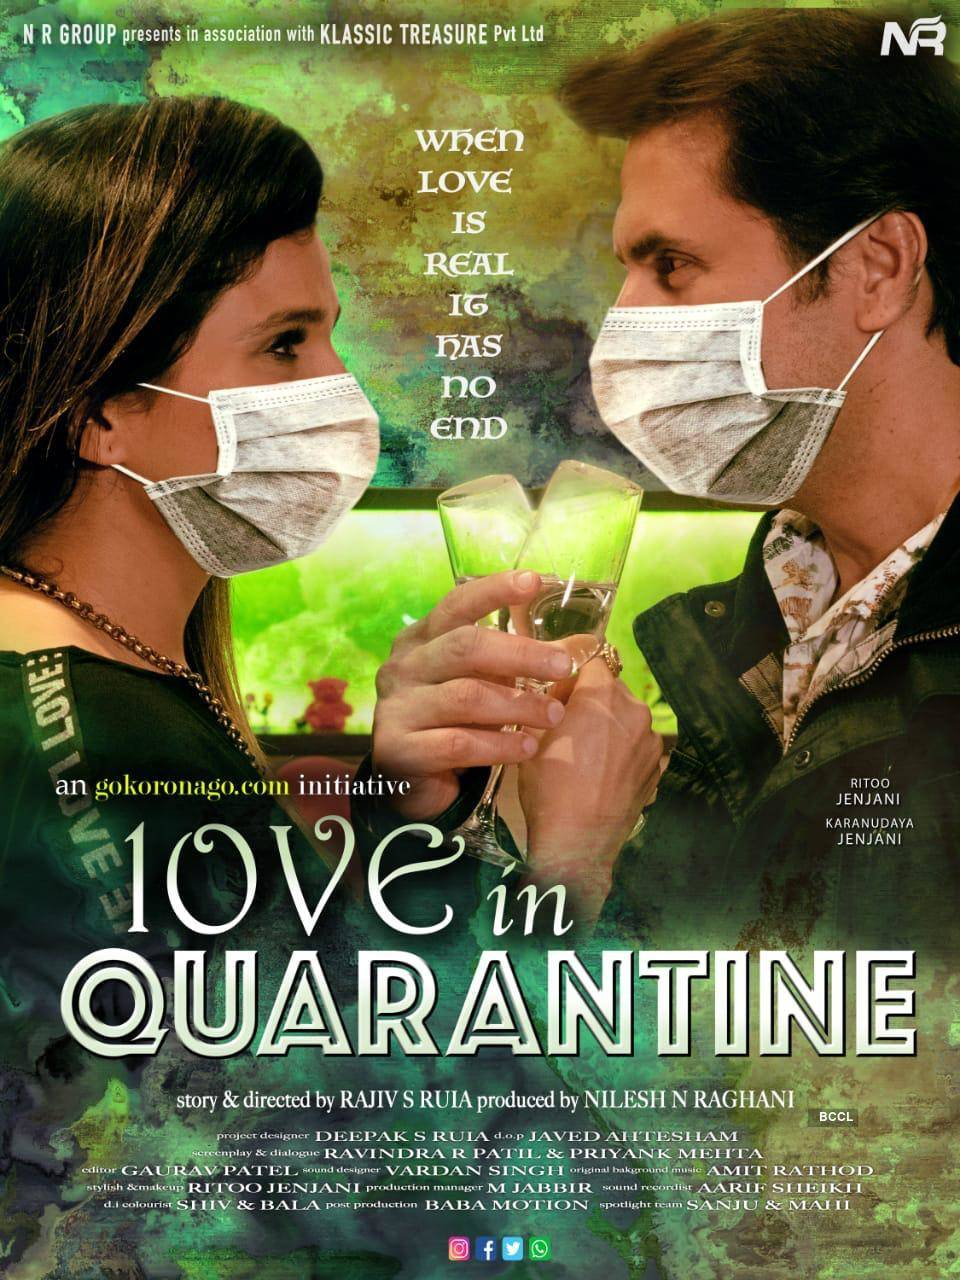 'Love in Quarantine,' a short film by Nilesh N Raghani watched by more than 1000 doctors